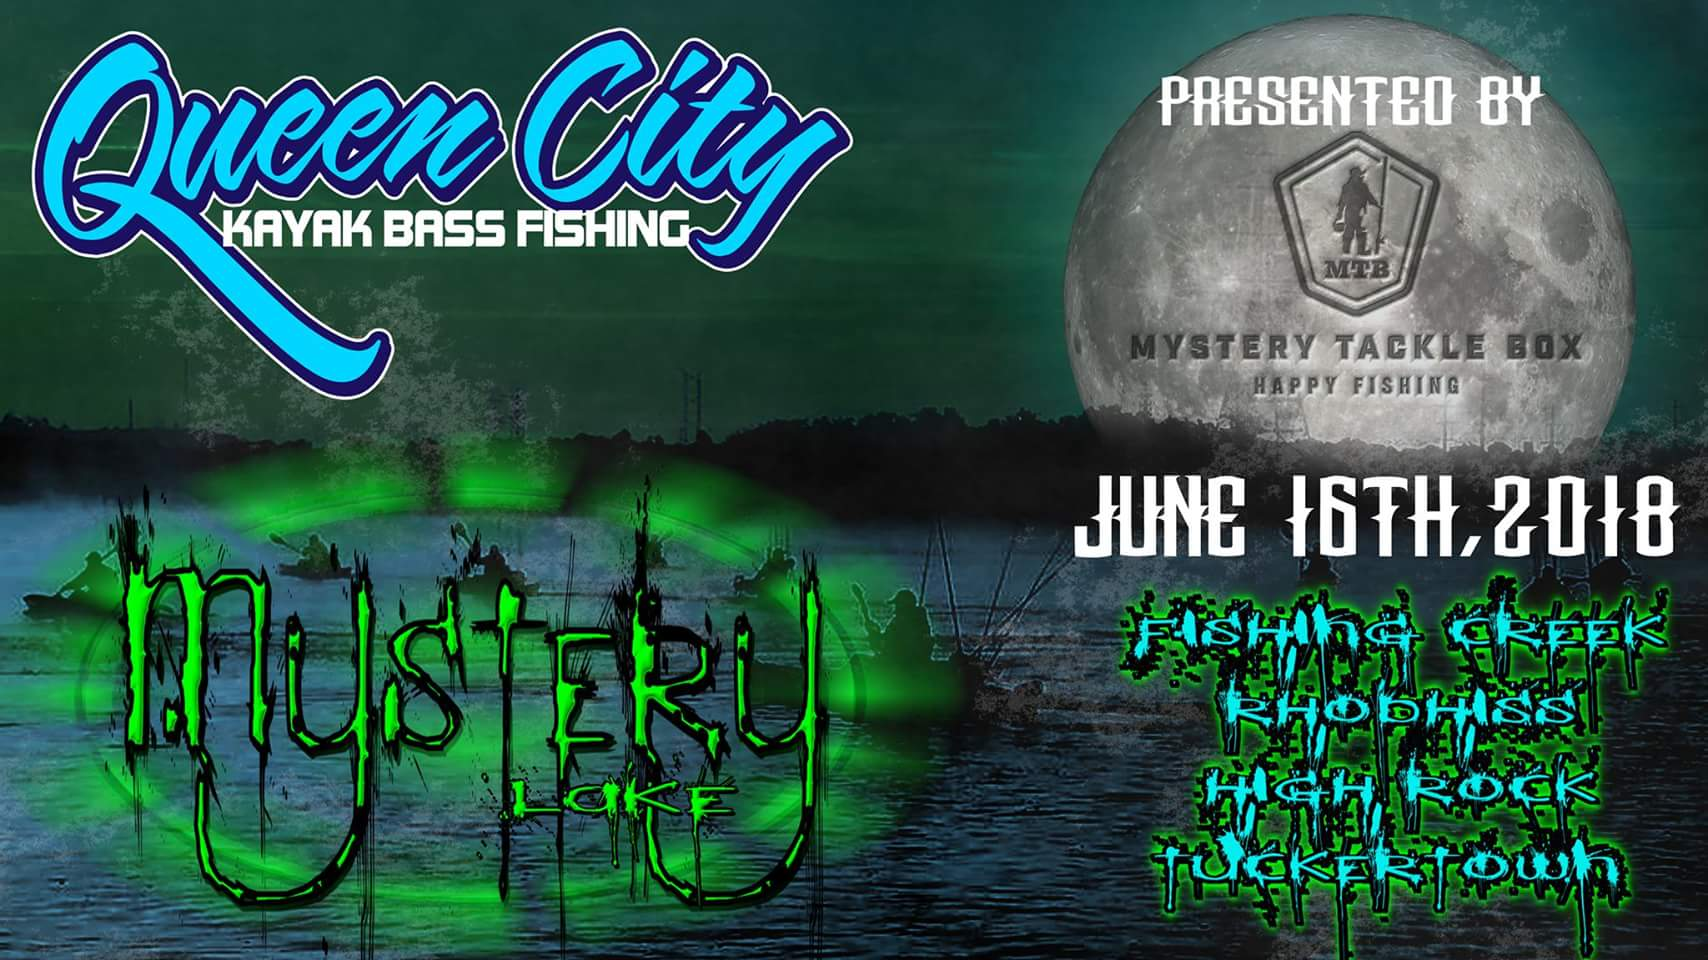 QCKBF Event 5 Presented by Mystery Tackle Box